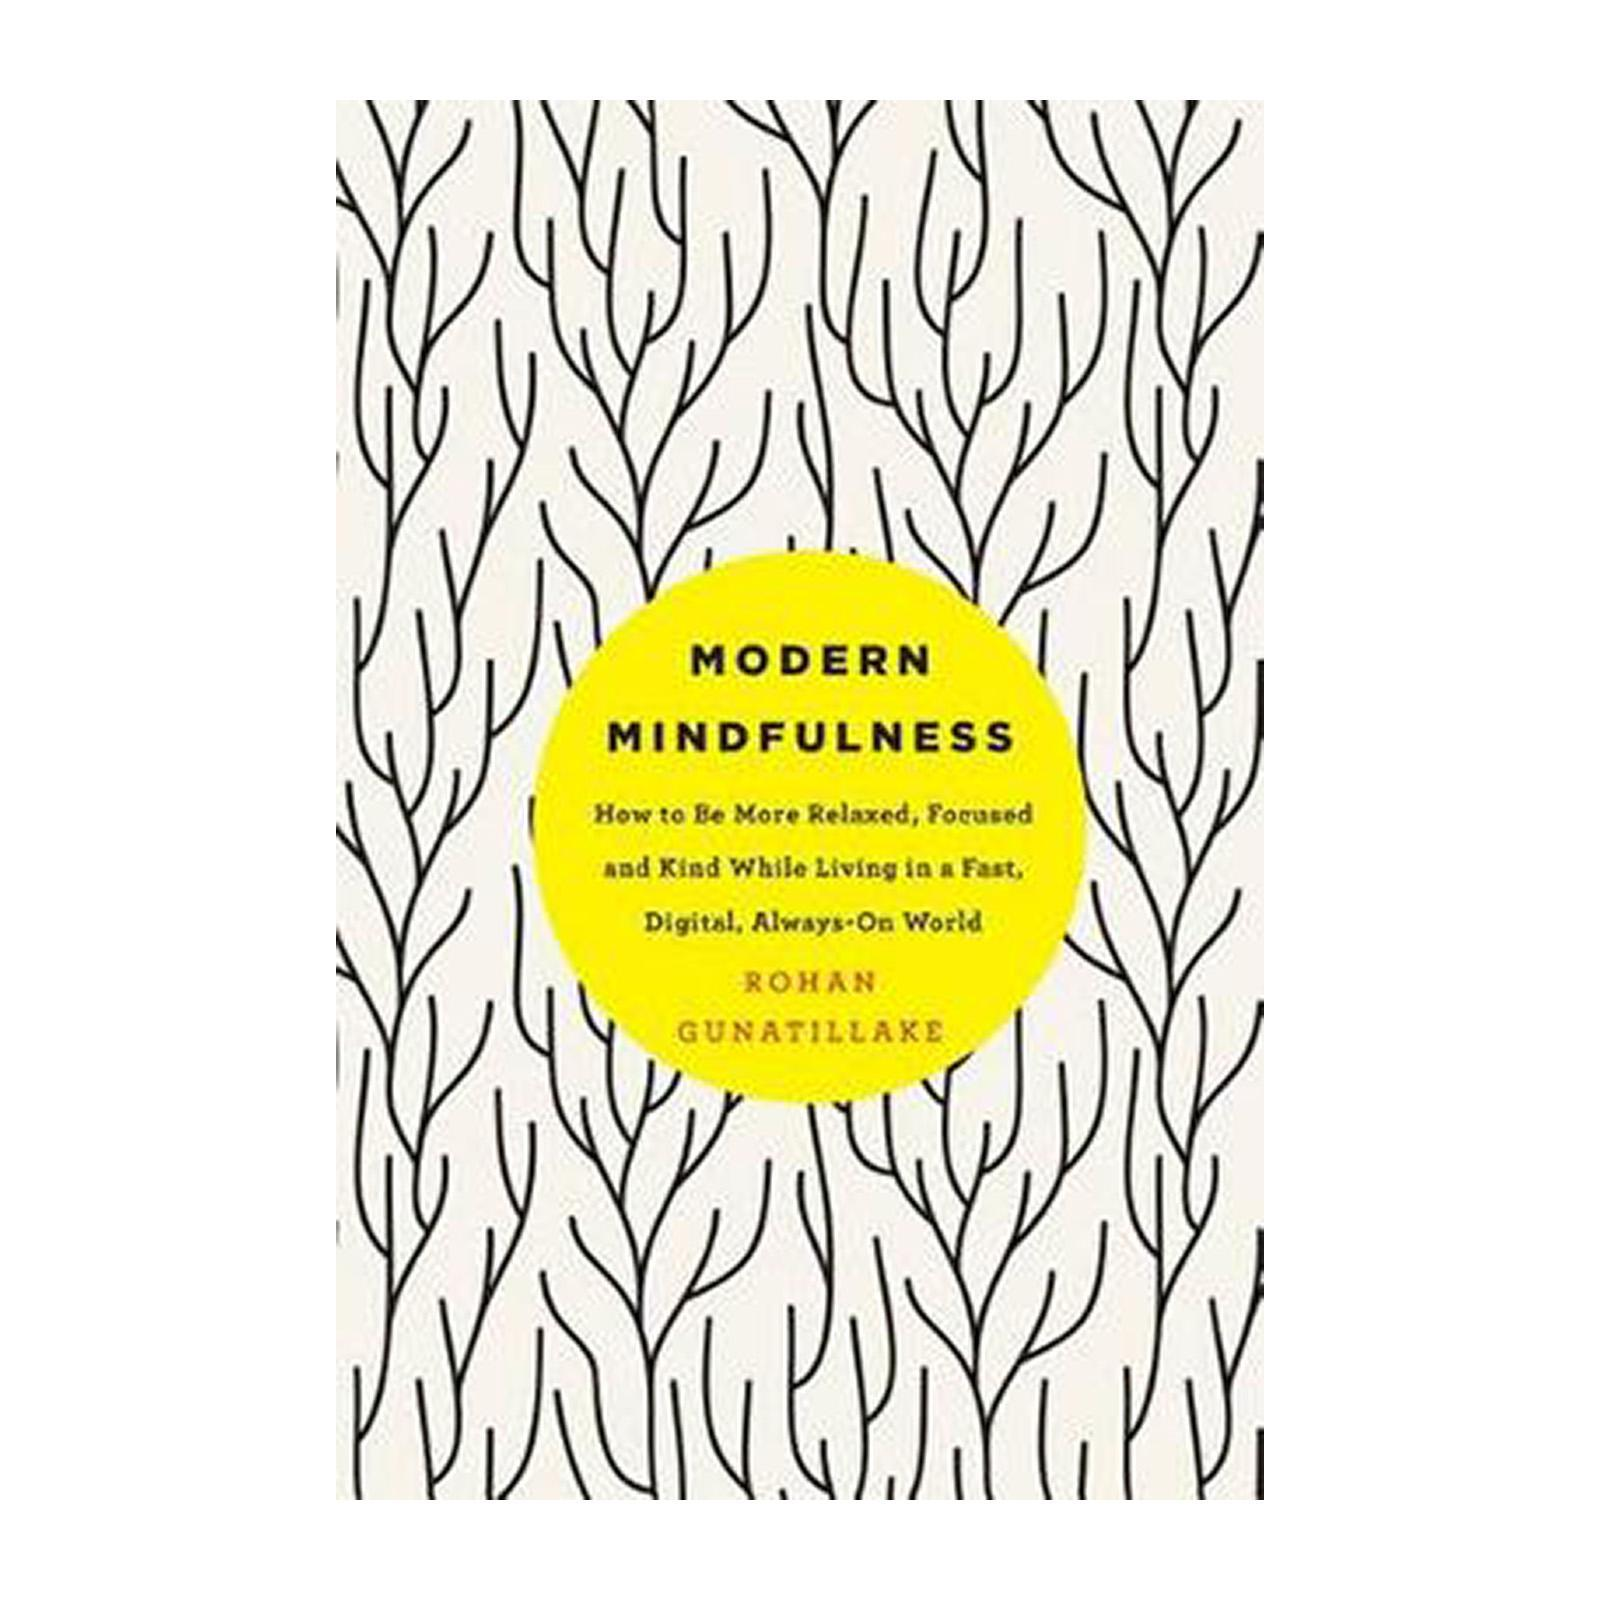 Modern Mindfulness: How To Be More Relaxed Focused And Kind While Living In A Fast Digital Always-On World (Paperback)